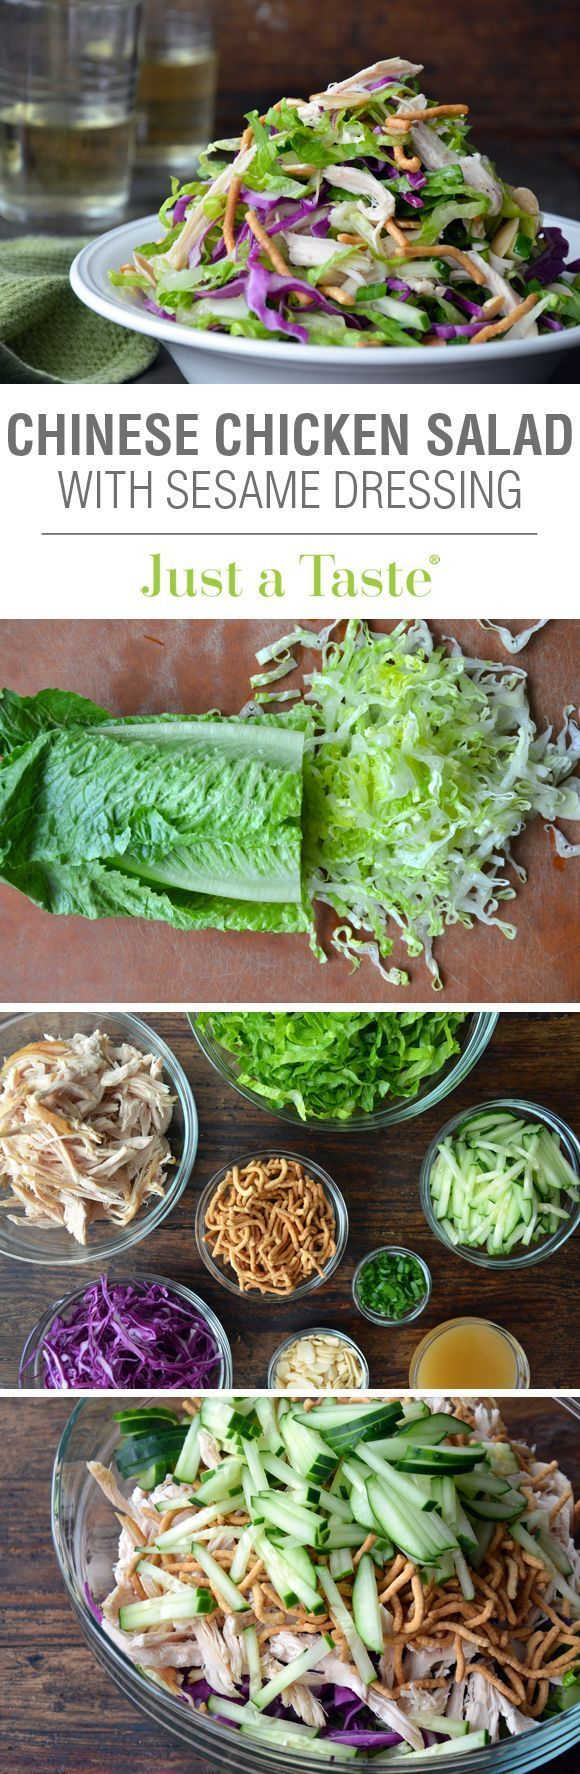 Chinese Chicken Salad with Sesame Dressing #recipe from http://justataste.com